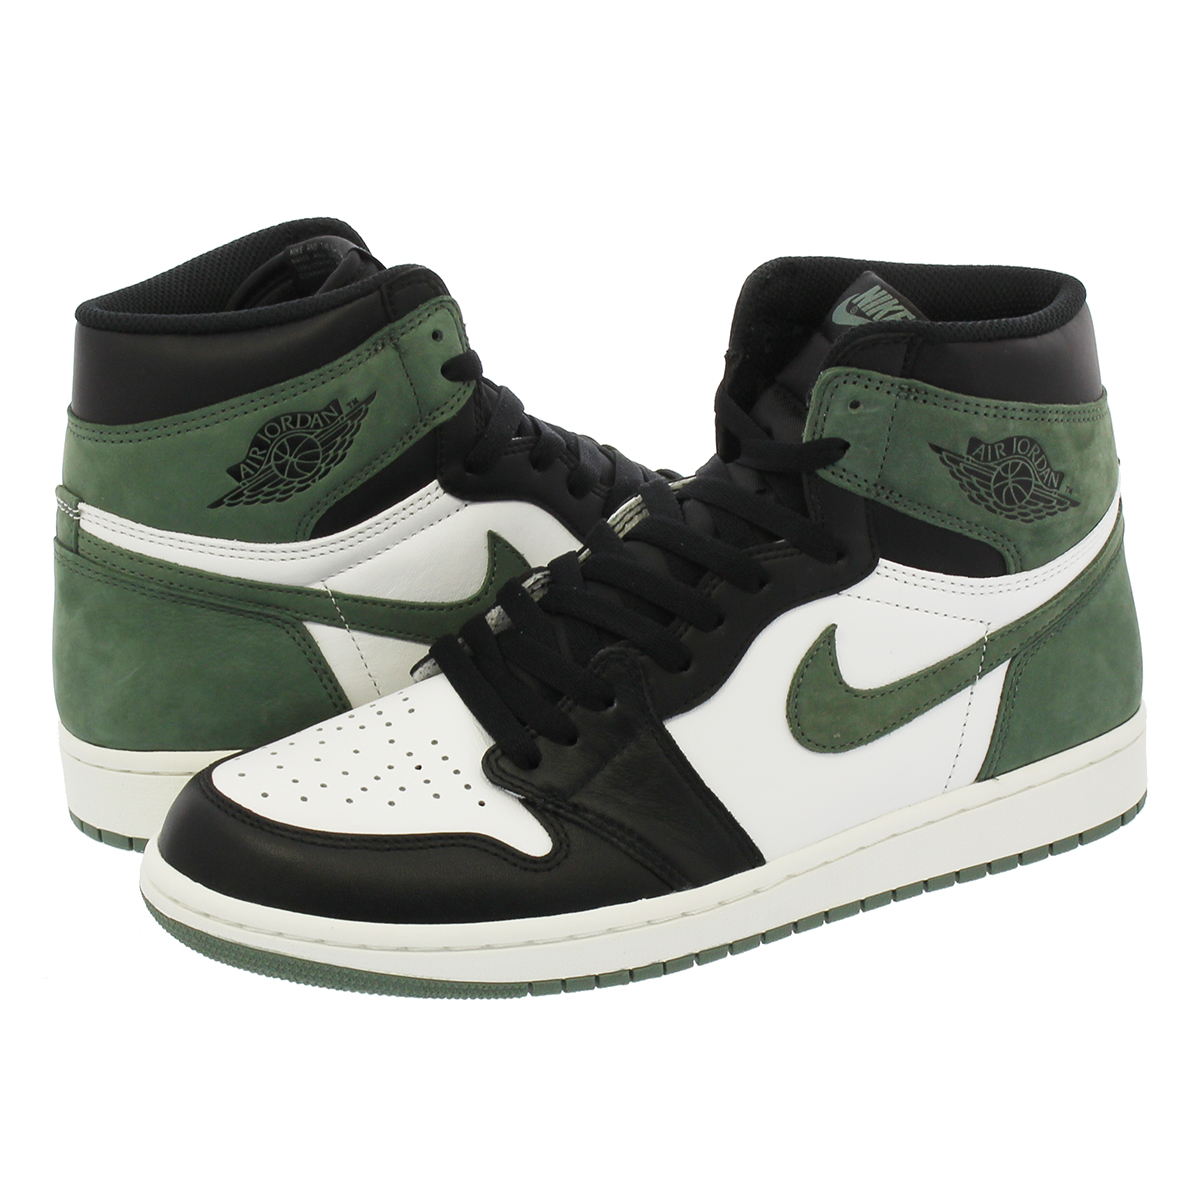 a927aec8974ee8 NIKE AIR JORDAN 1 RETRO HIGH OG Nike Air Jordan 1 nostalgic high OG  WHITE BLACK CLAY GREEN